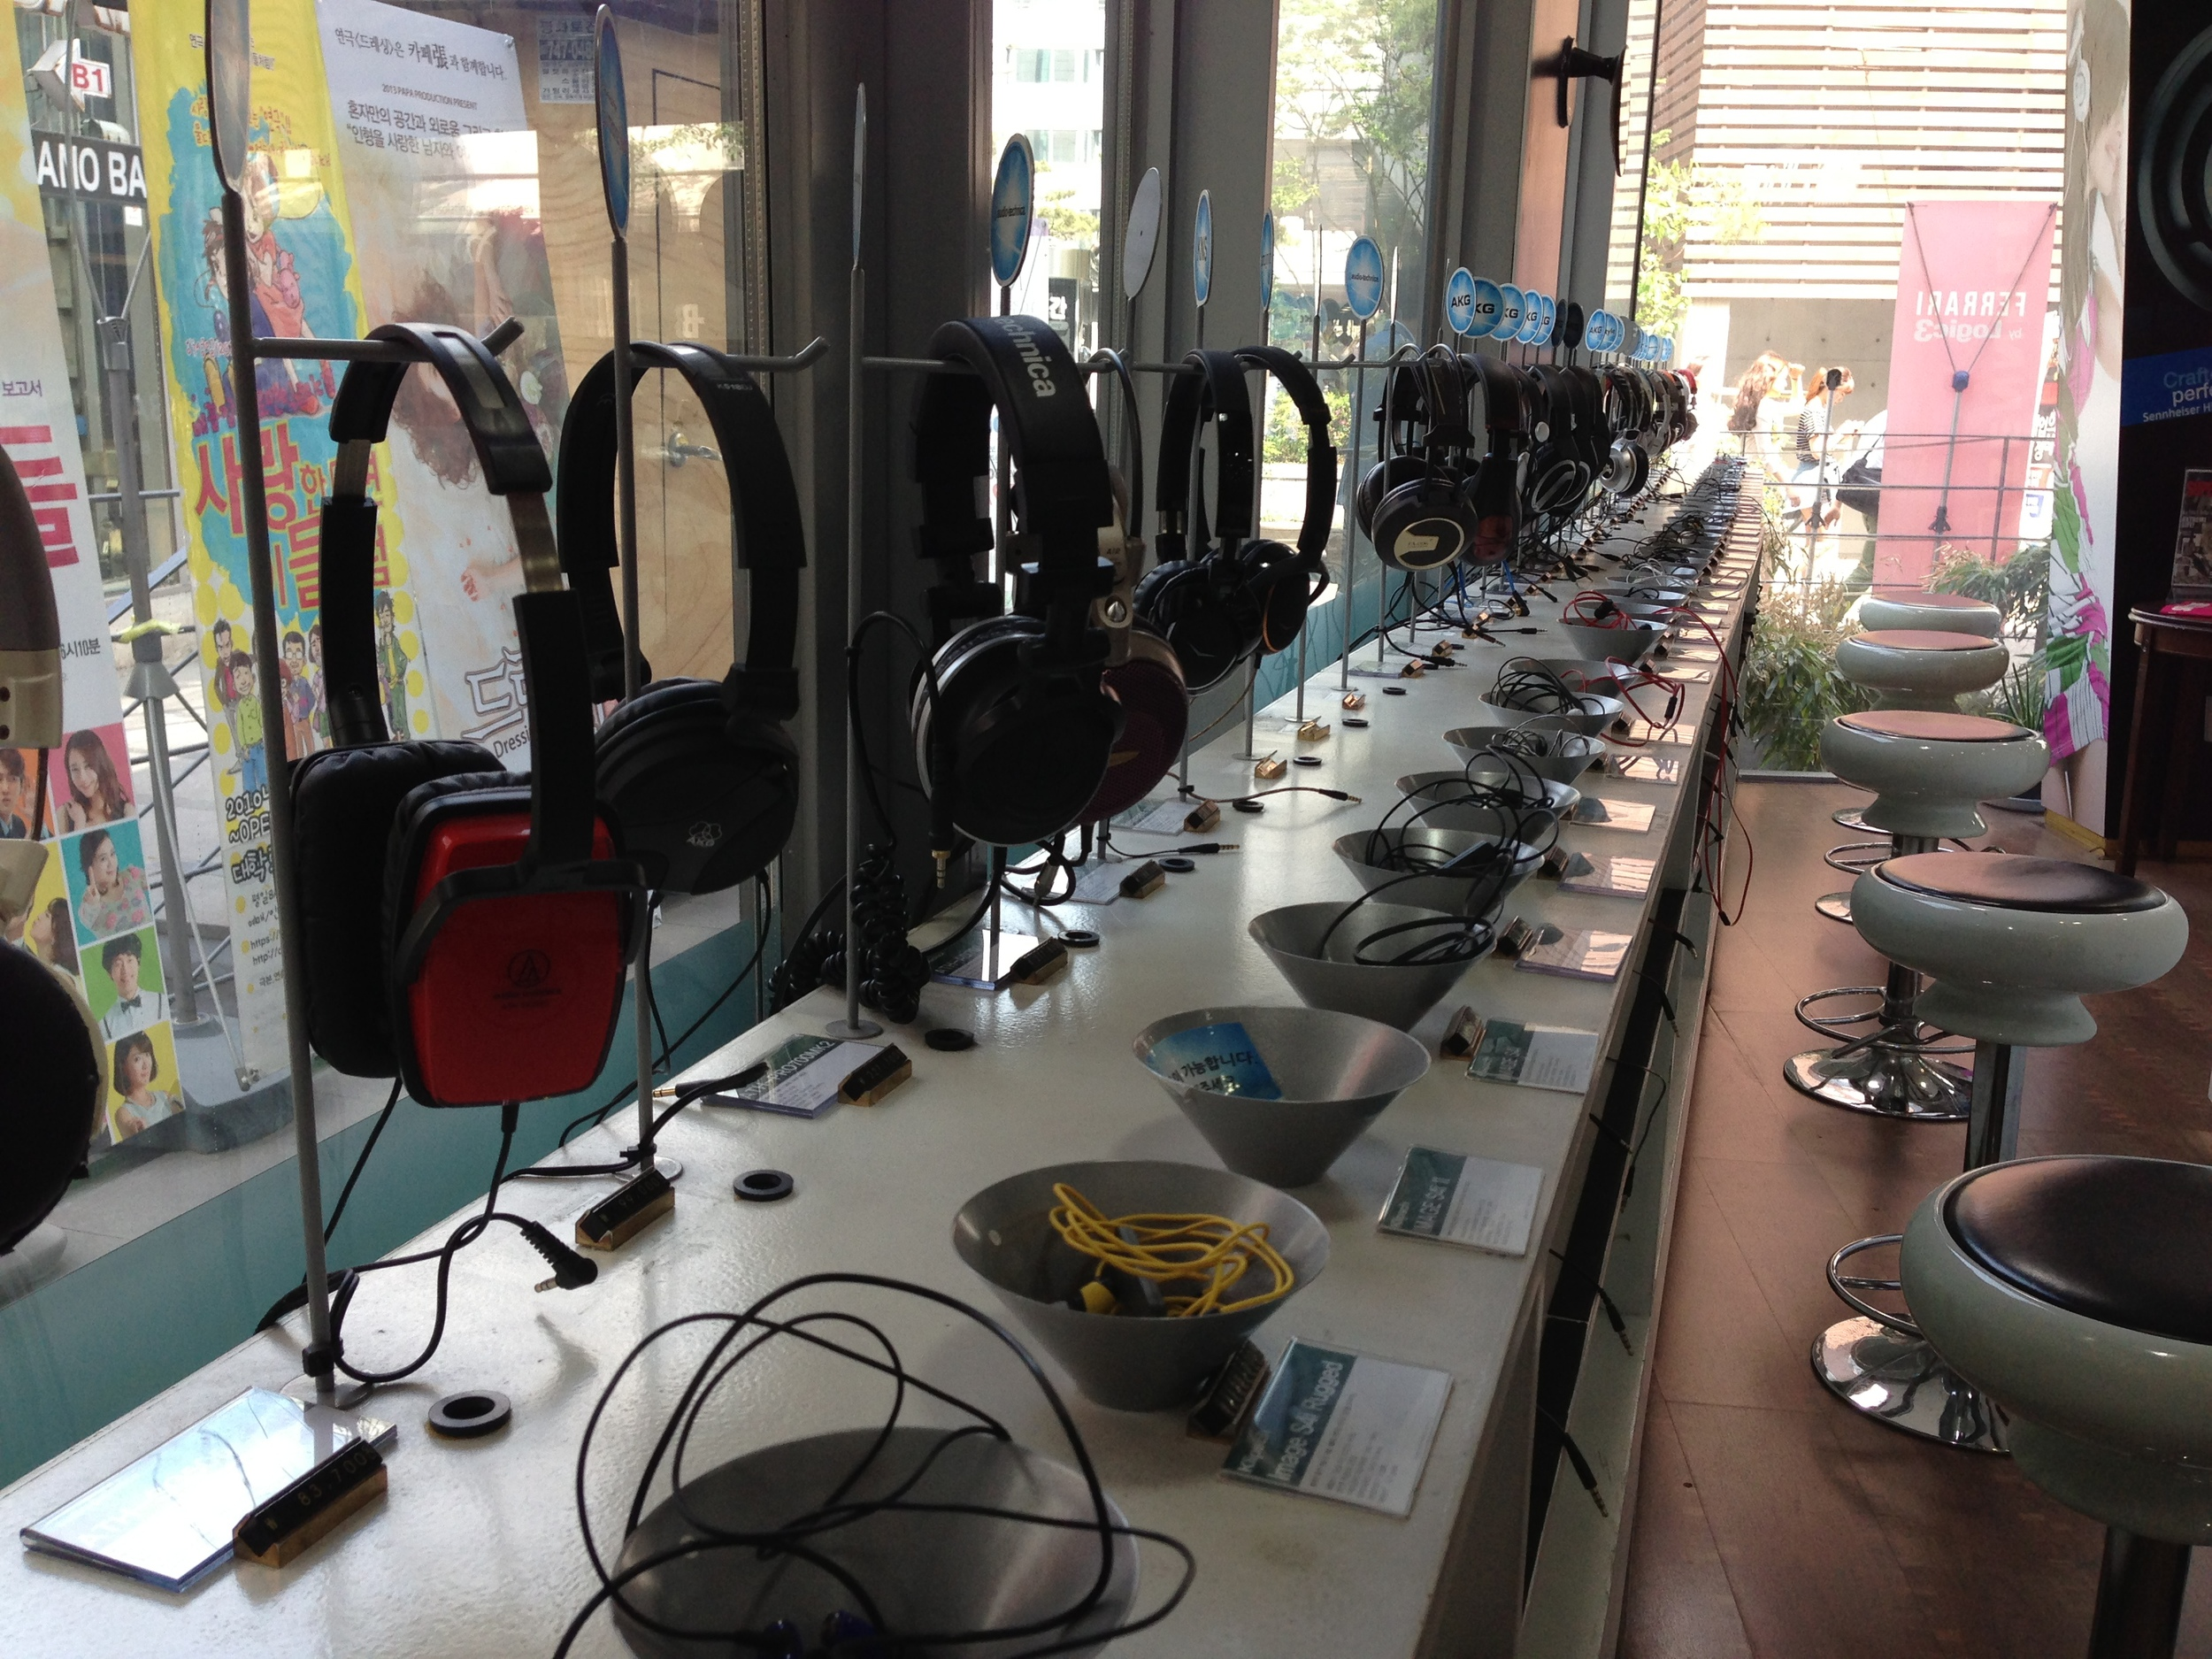 Rows of headphones to try